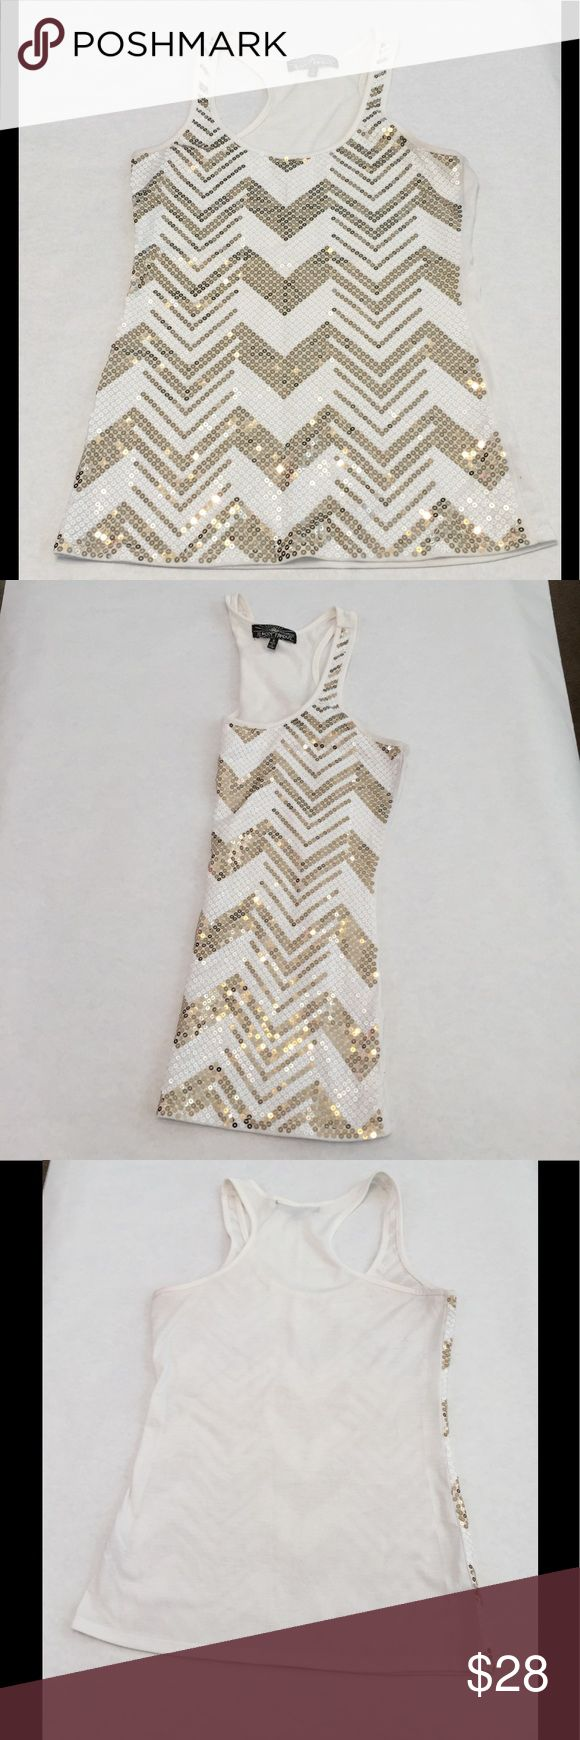 New Almost Famous gold sequin tank size small New Almost Famous gold sequin tank size small. This is new without tags. Almost Famous Tops Tank Tops